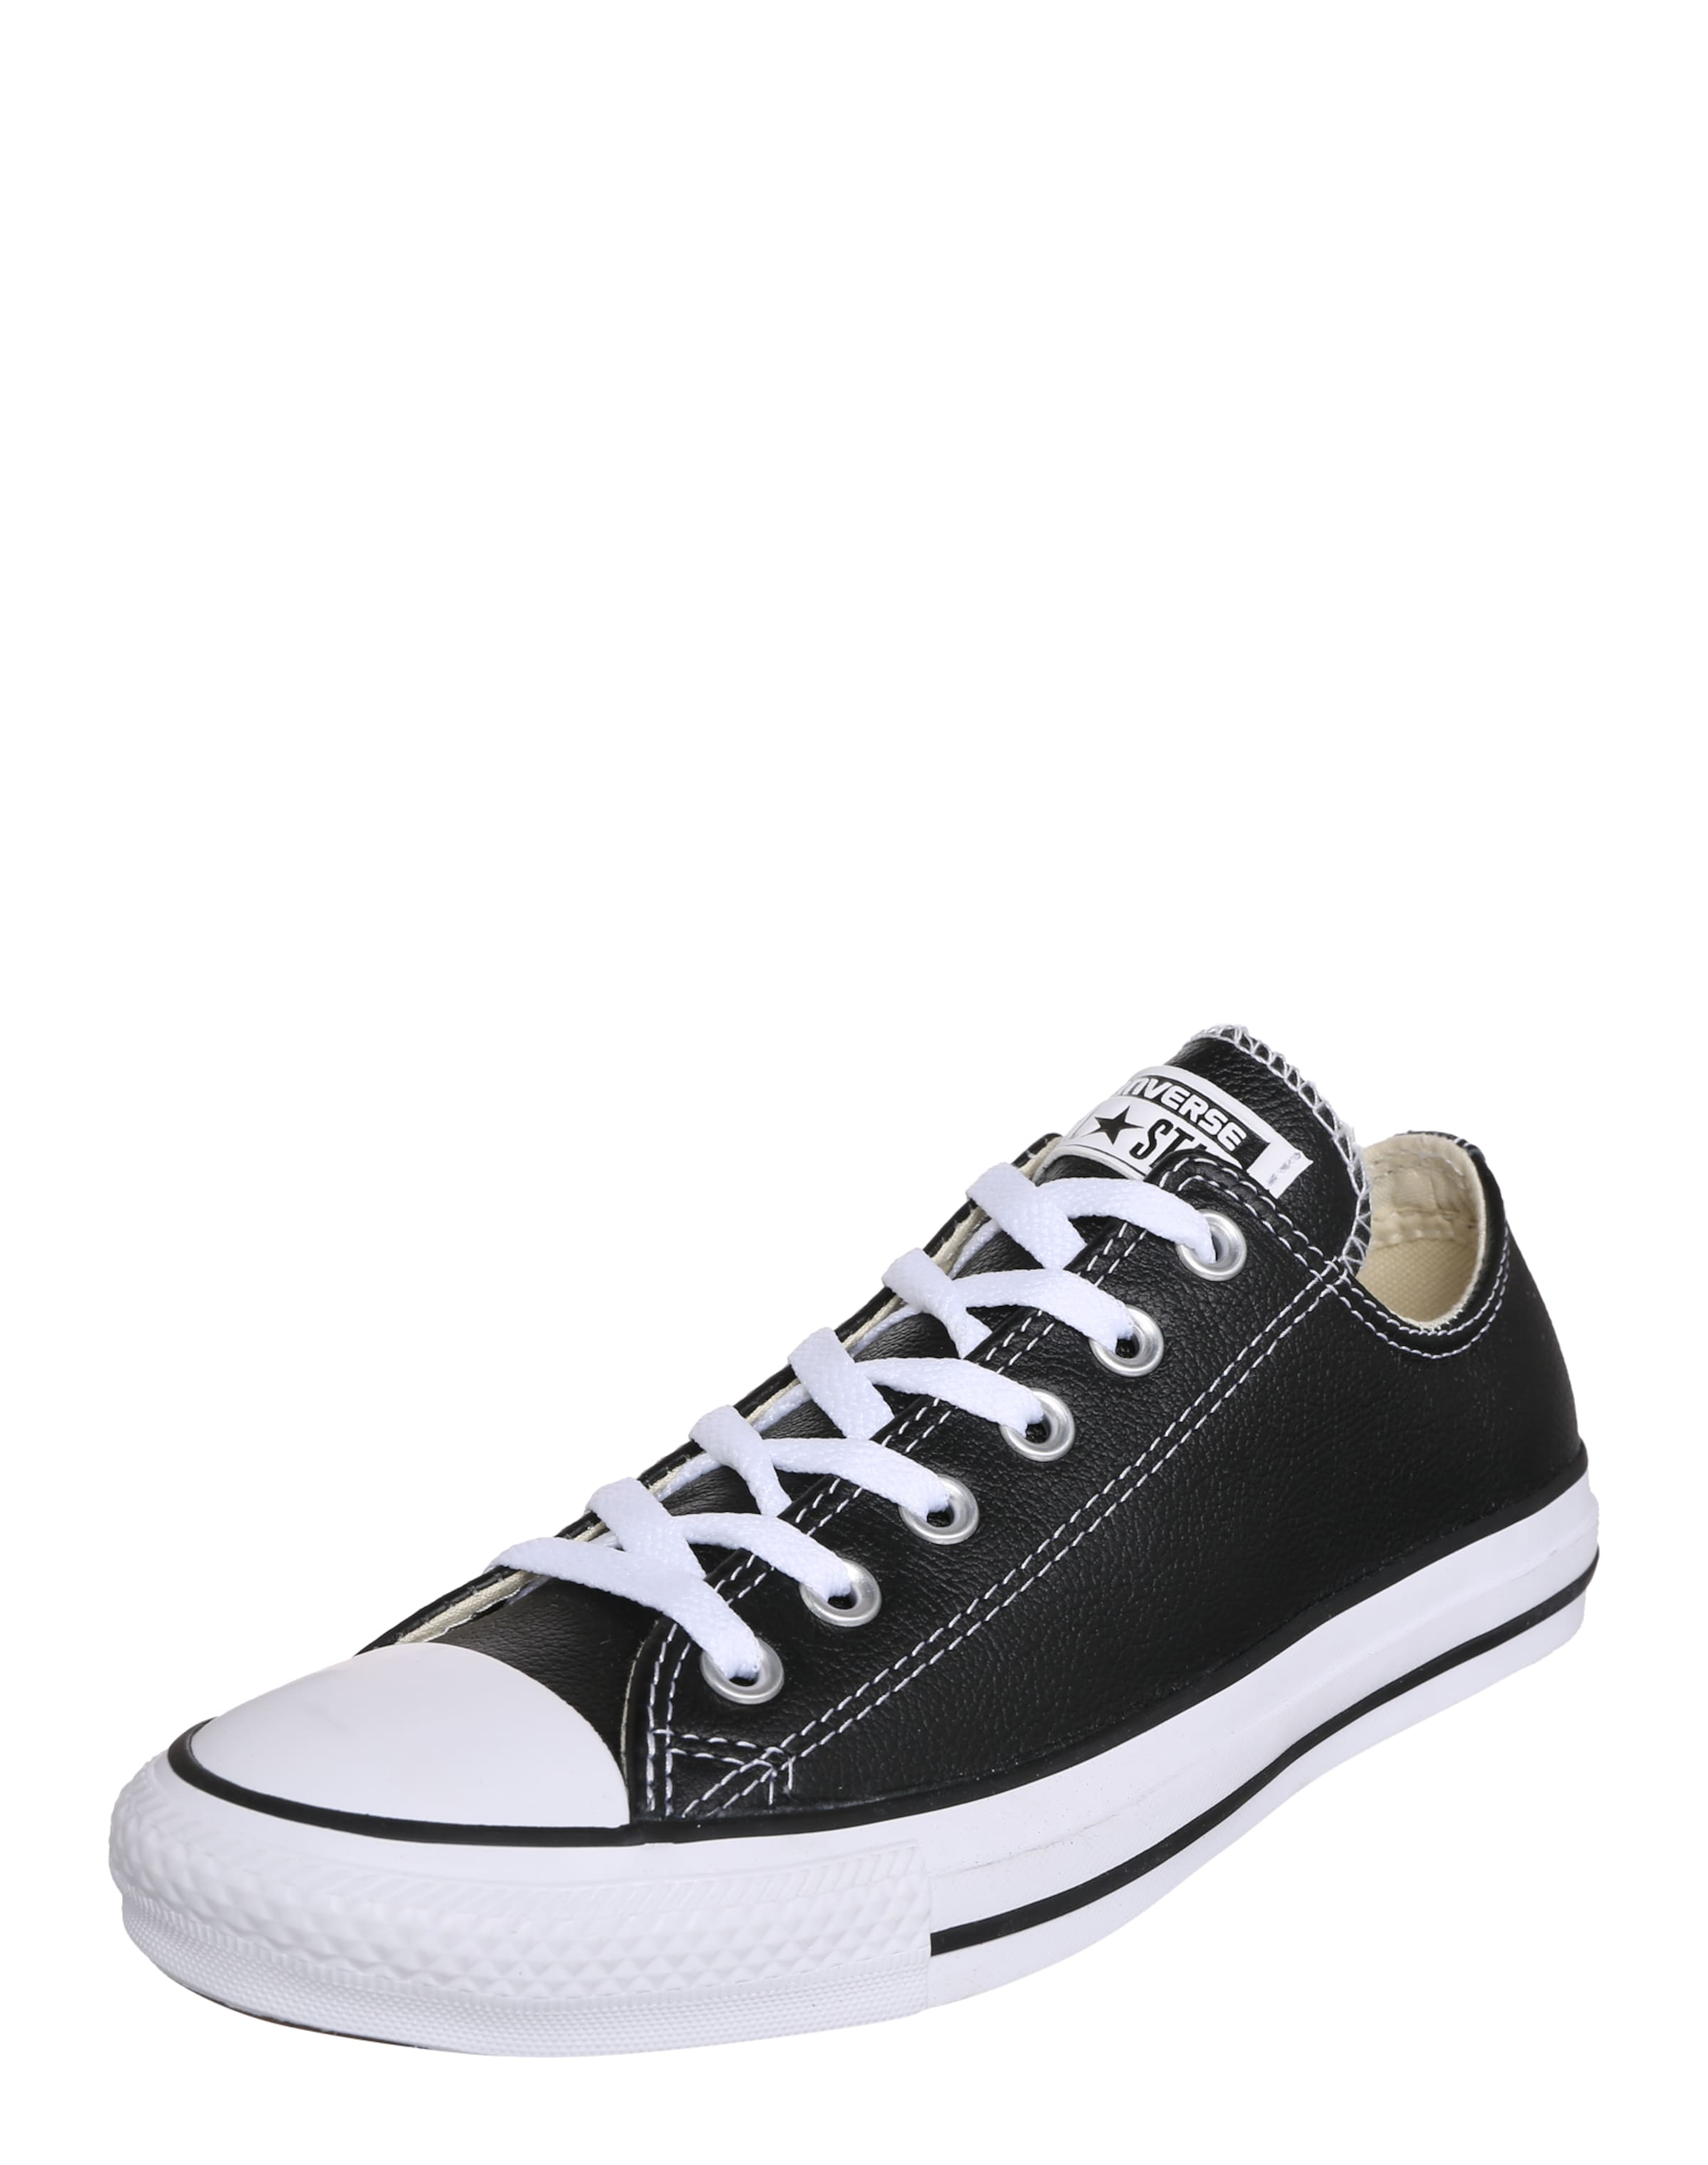 CONVERSE All Star Core Leather Hohe Qualität